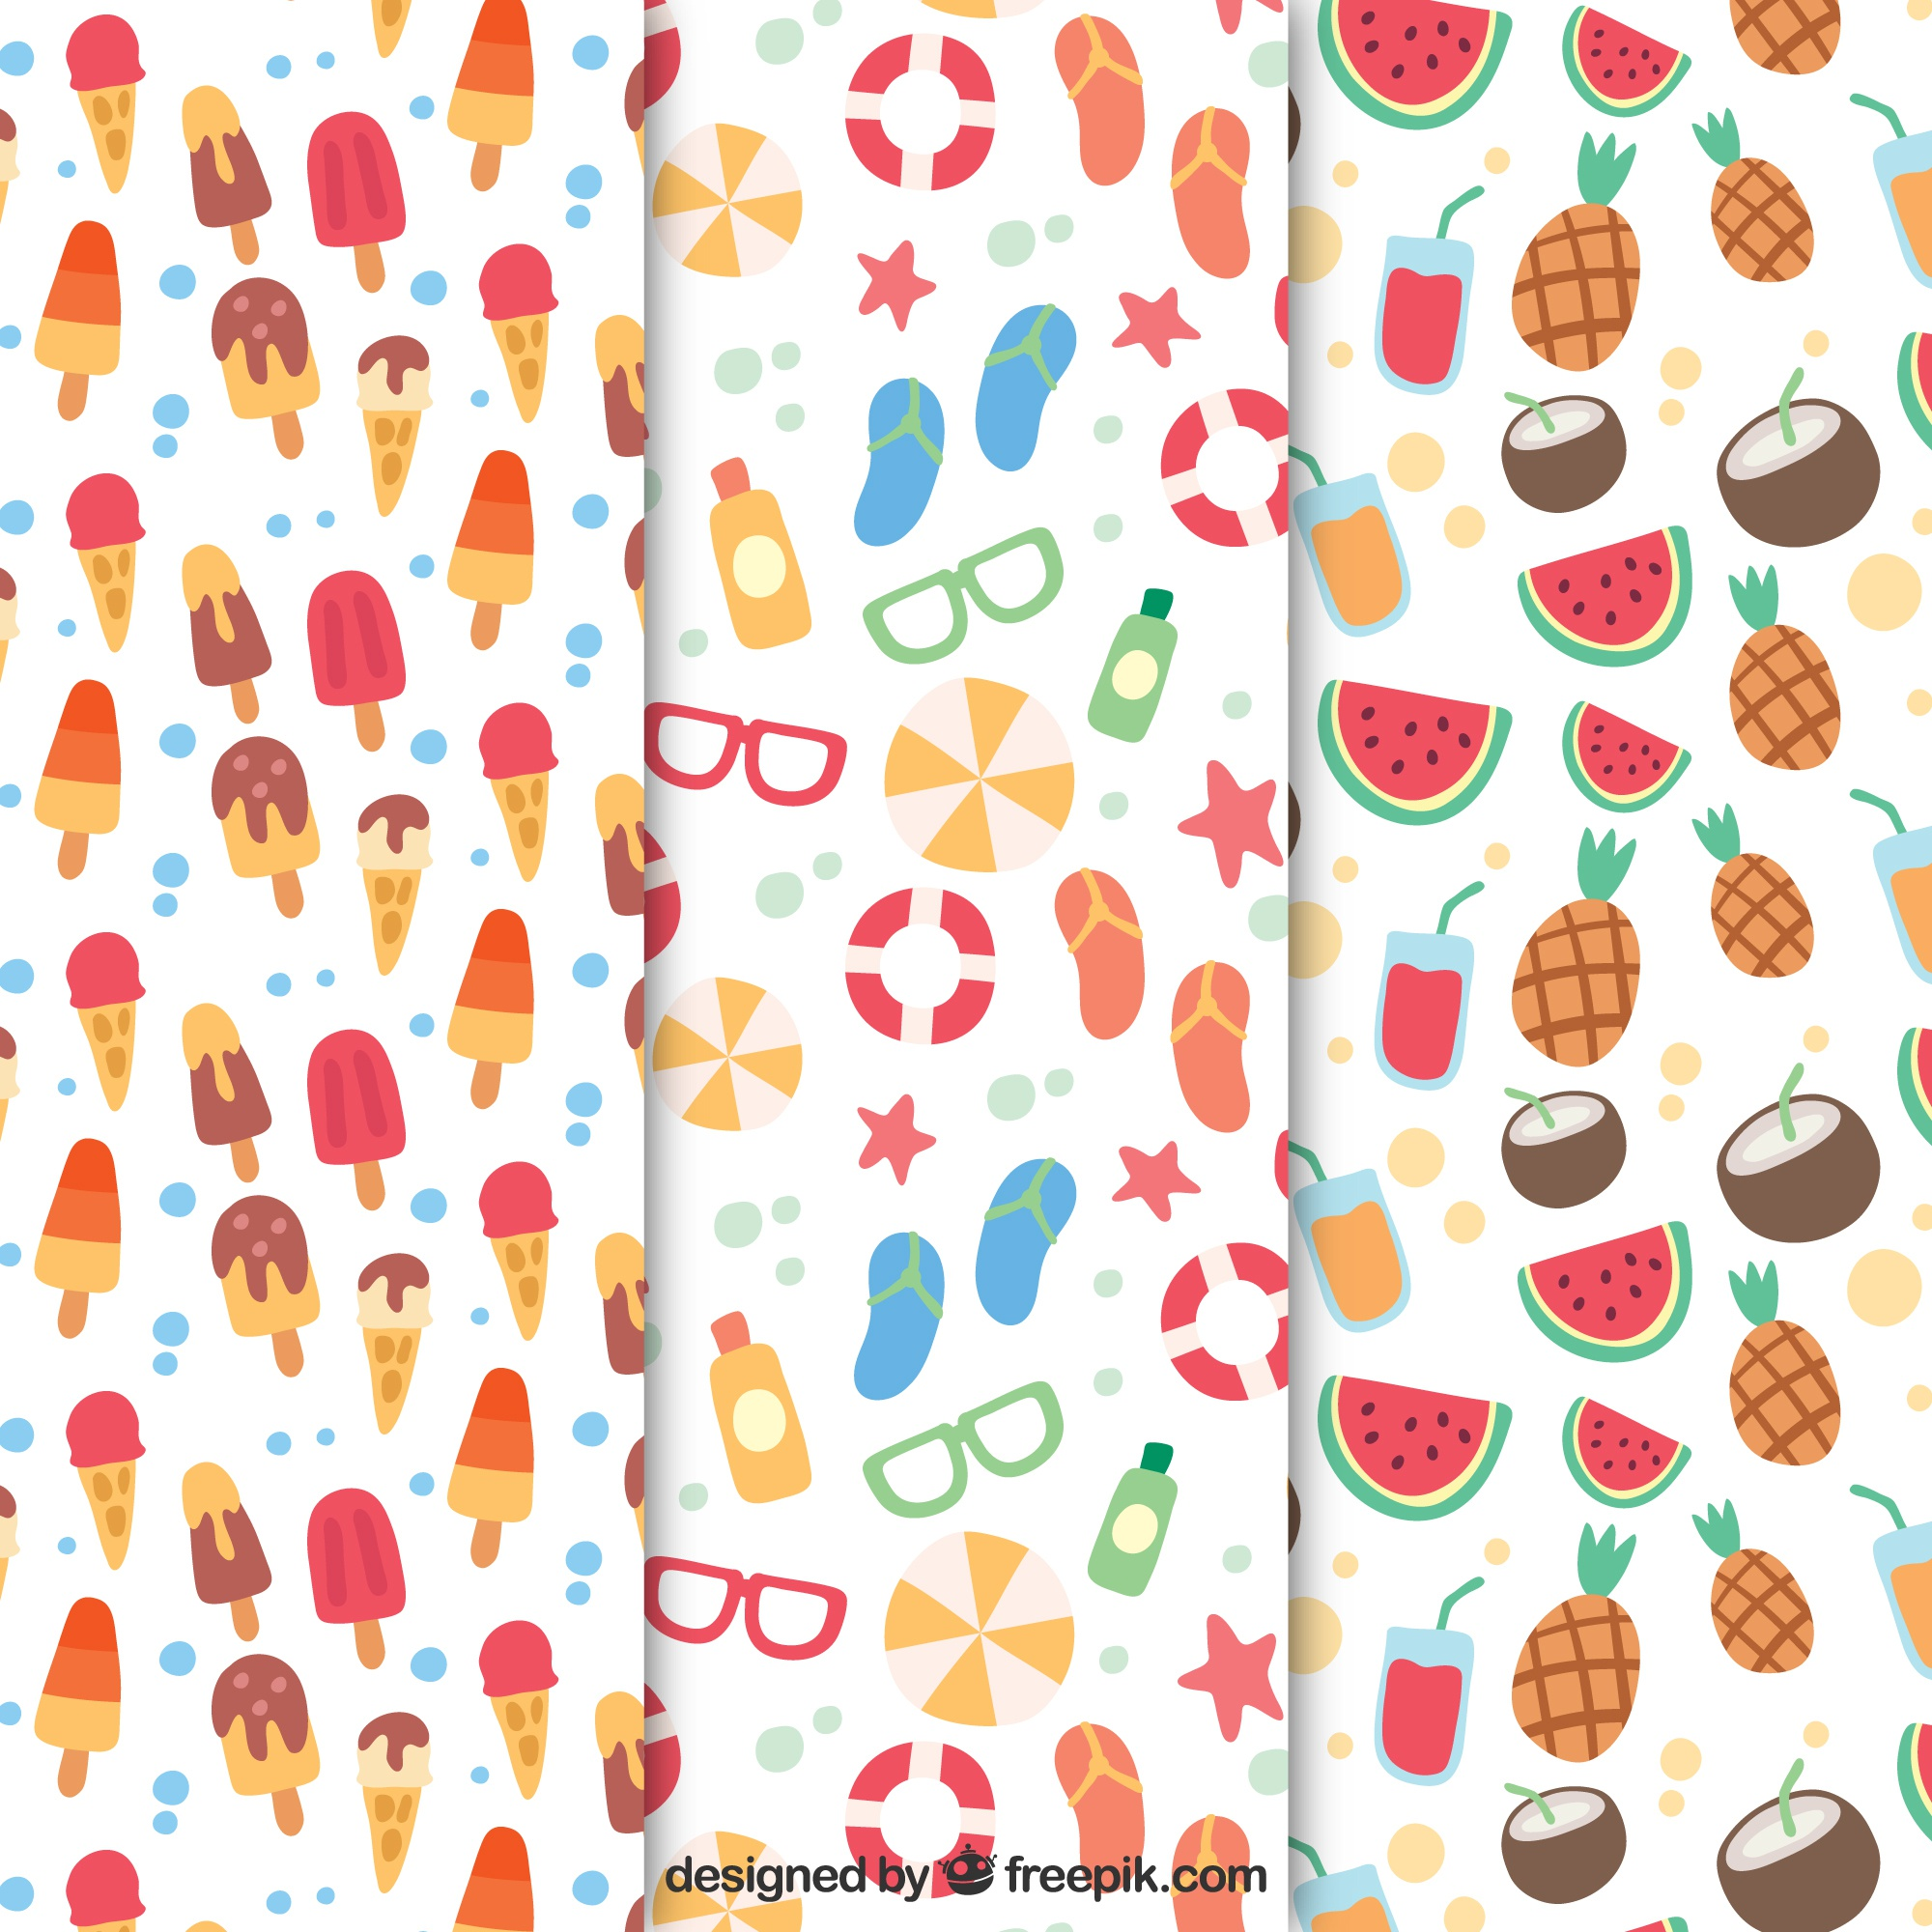 Several summer patterns with flat elements